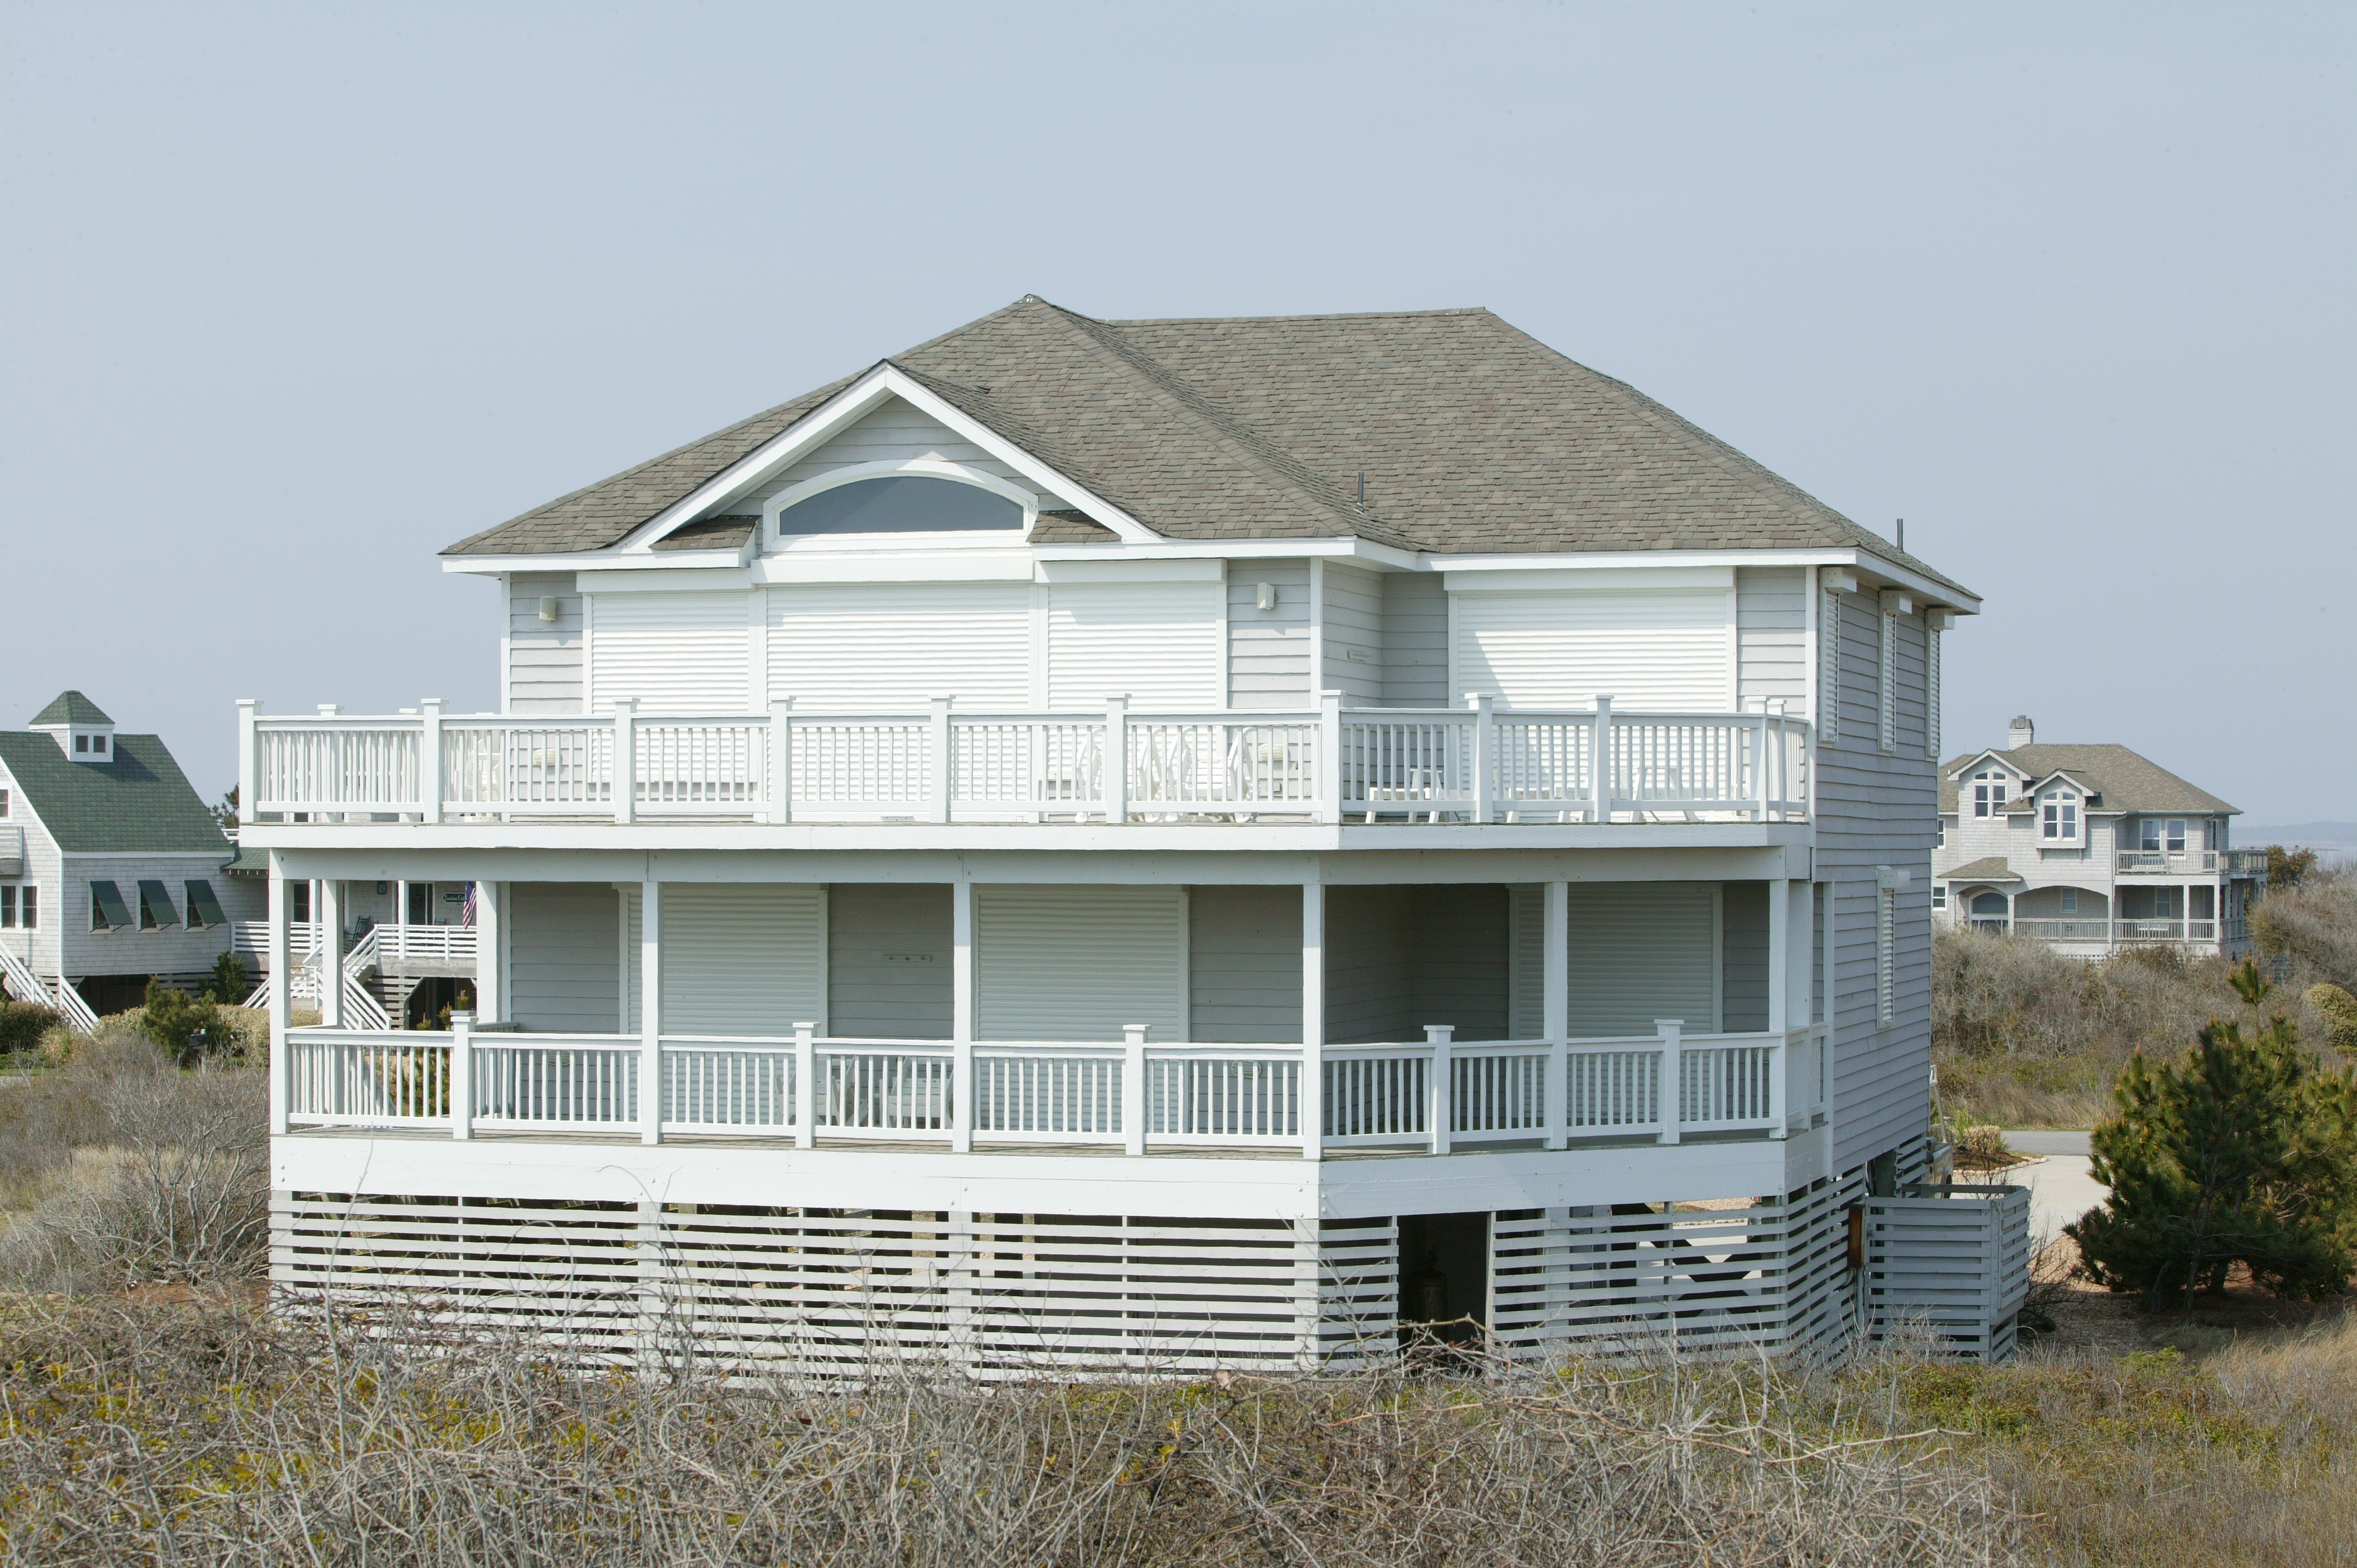 breeze carolina surf city rolling archives storm hurricane nc img raleigh awning awnings shutters tag atlantic beach